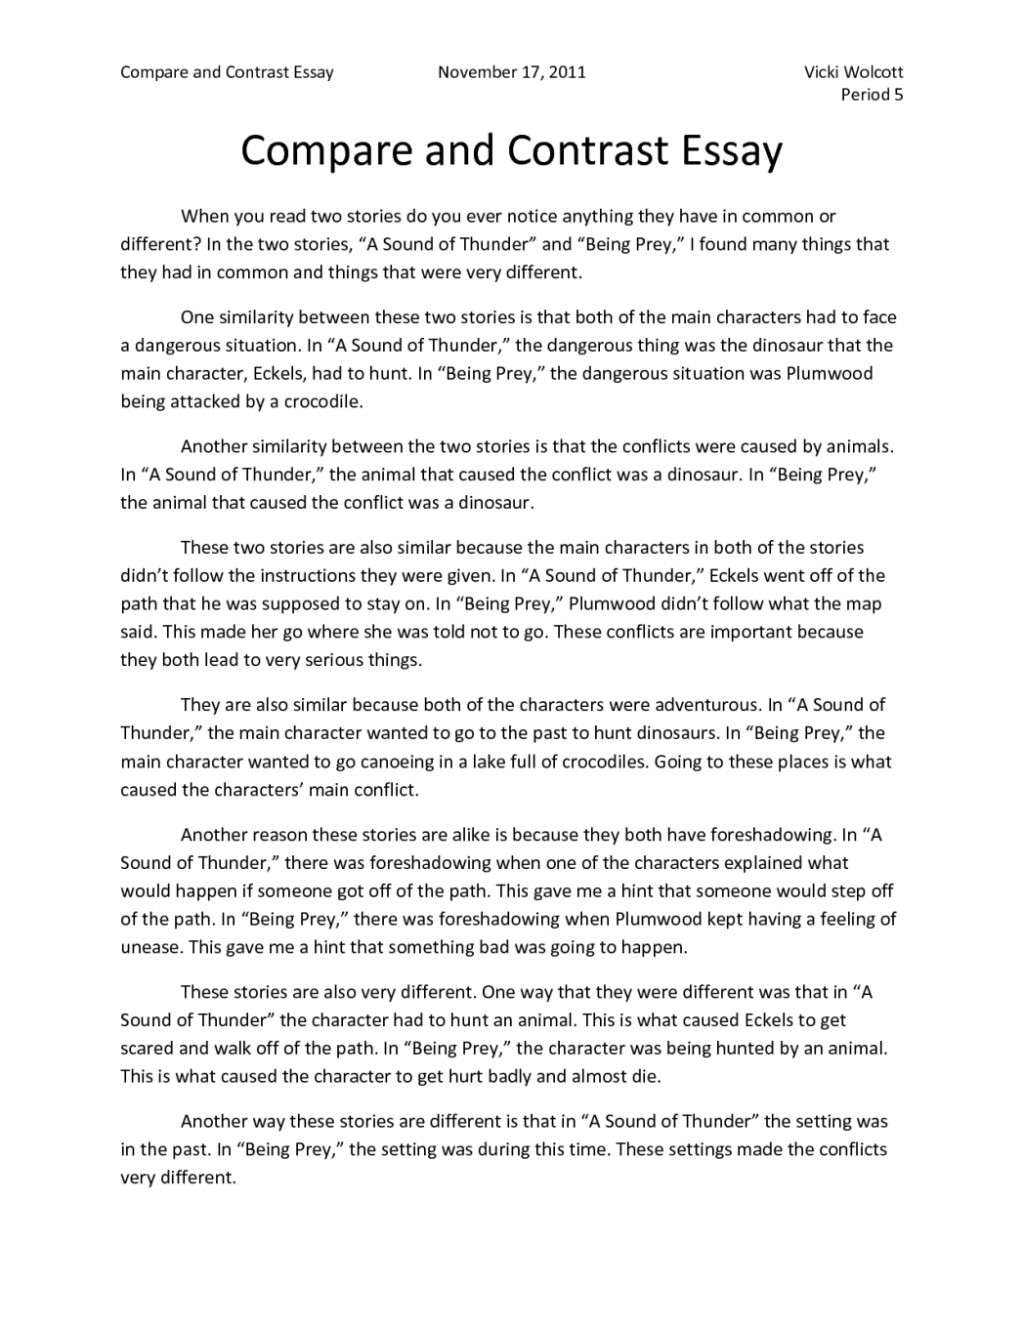 004 Argumentative Essay Topic Ideas Causal Topics Compare And Contrast For Argument Or Position 1048x1356 Surprising Rogerian Sentence 100 Easy Large